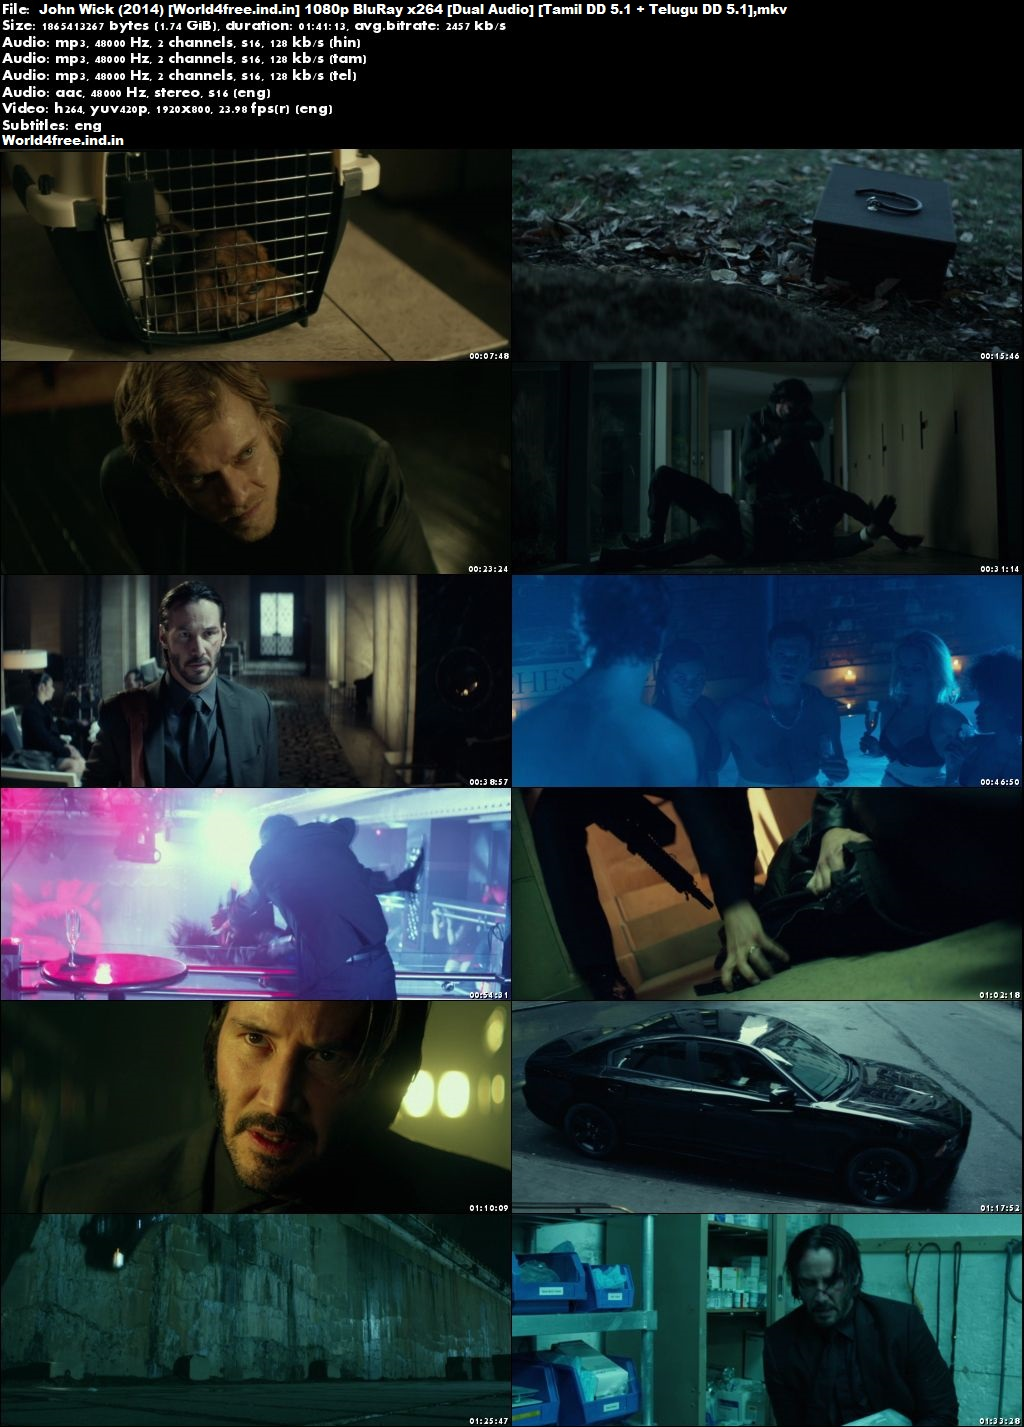 John Wick 2014 World4free.ind.in Dual Audio BRRip 1080p Hindi English